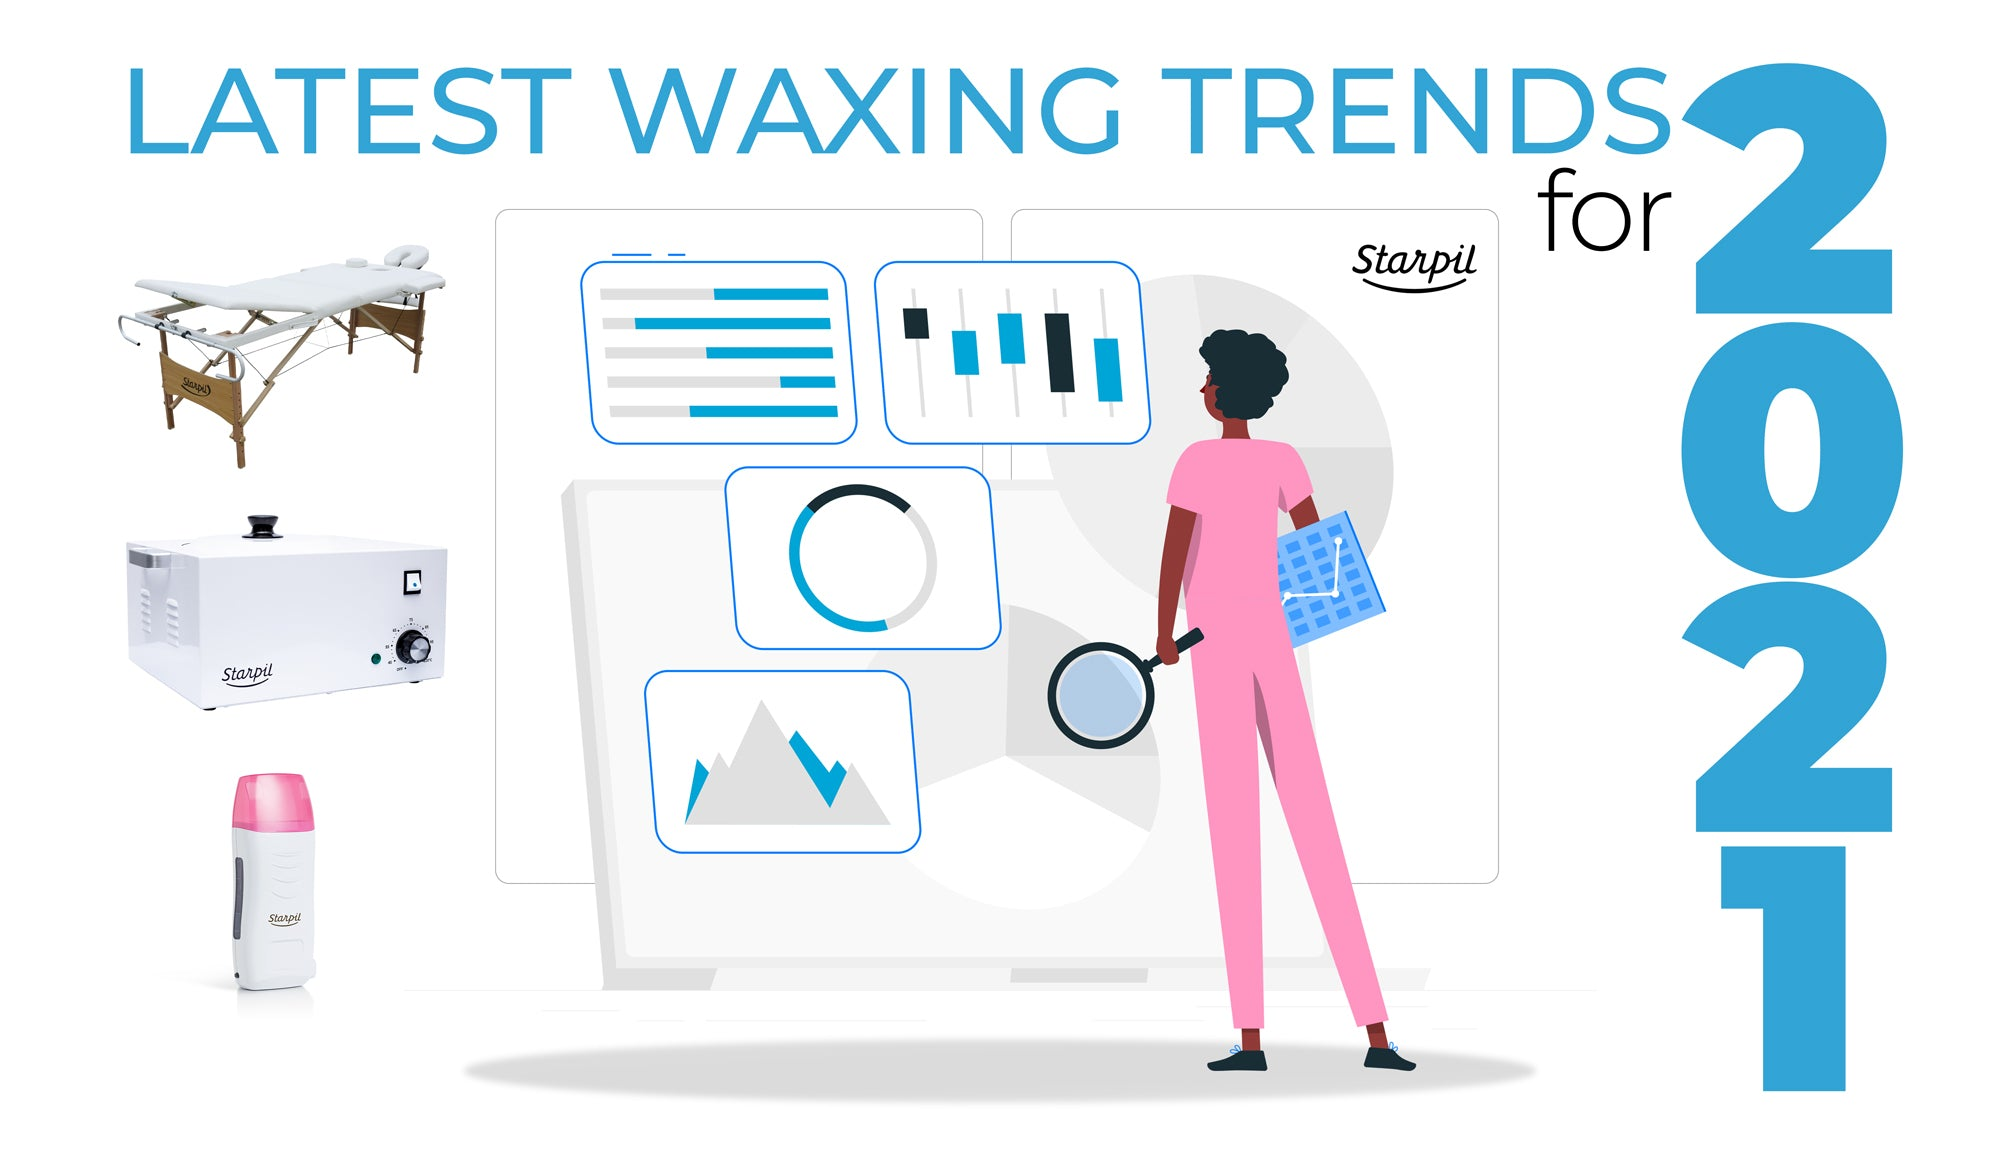 Latest Waxing Trends for 2021